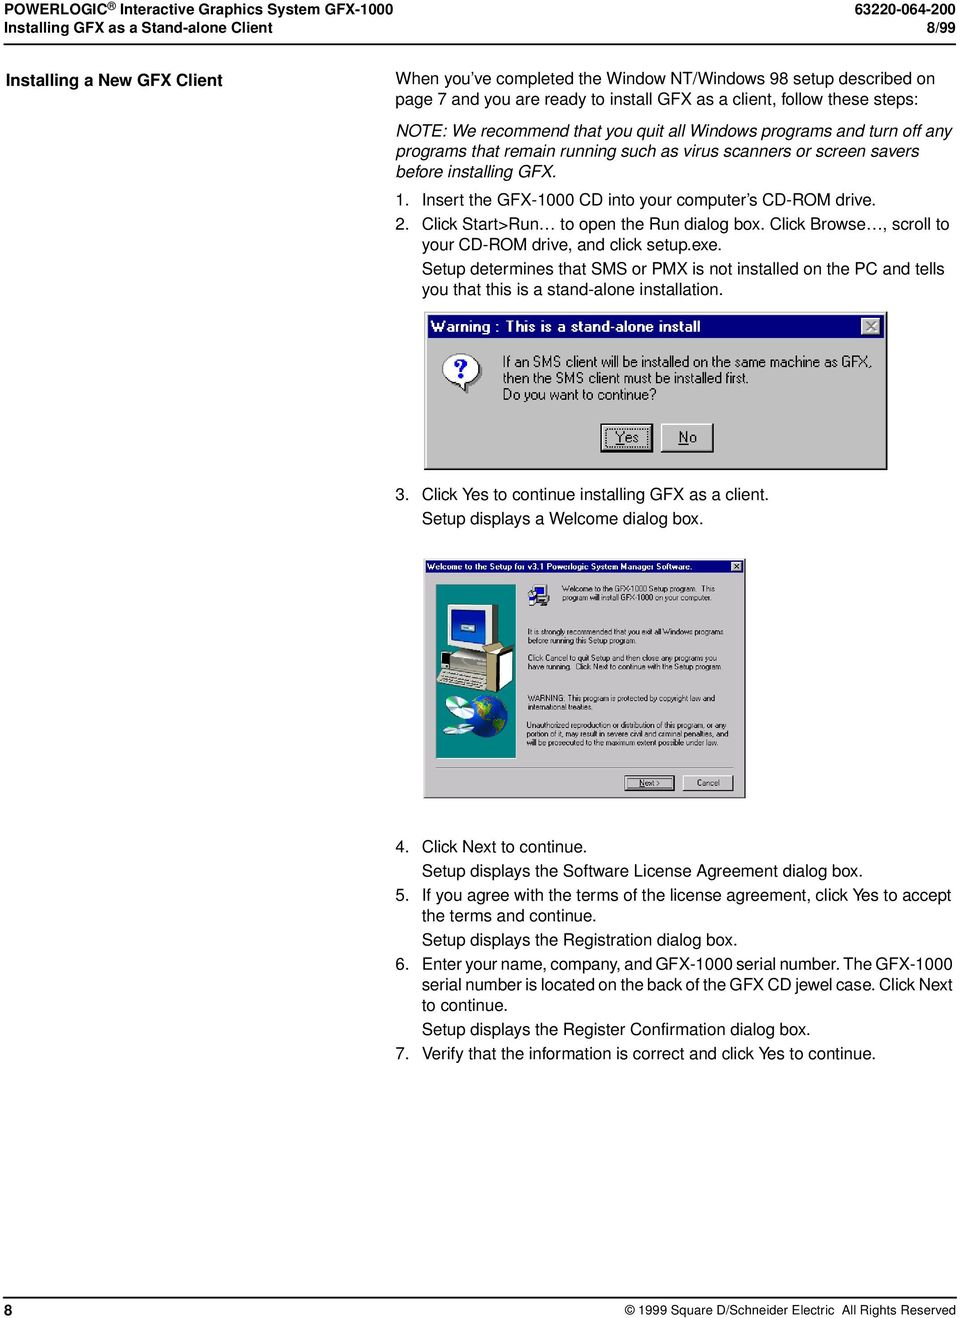 screen savers before installing GFX. 1. Insert the GFX-1000 CD into your computer s CD-ROM drive. 2. Click Start>Run to open the Run dialog box.